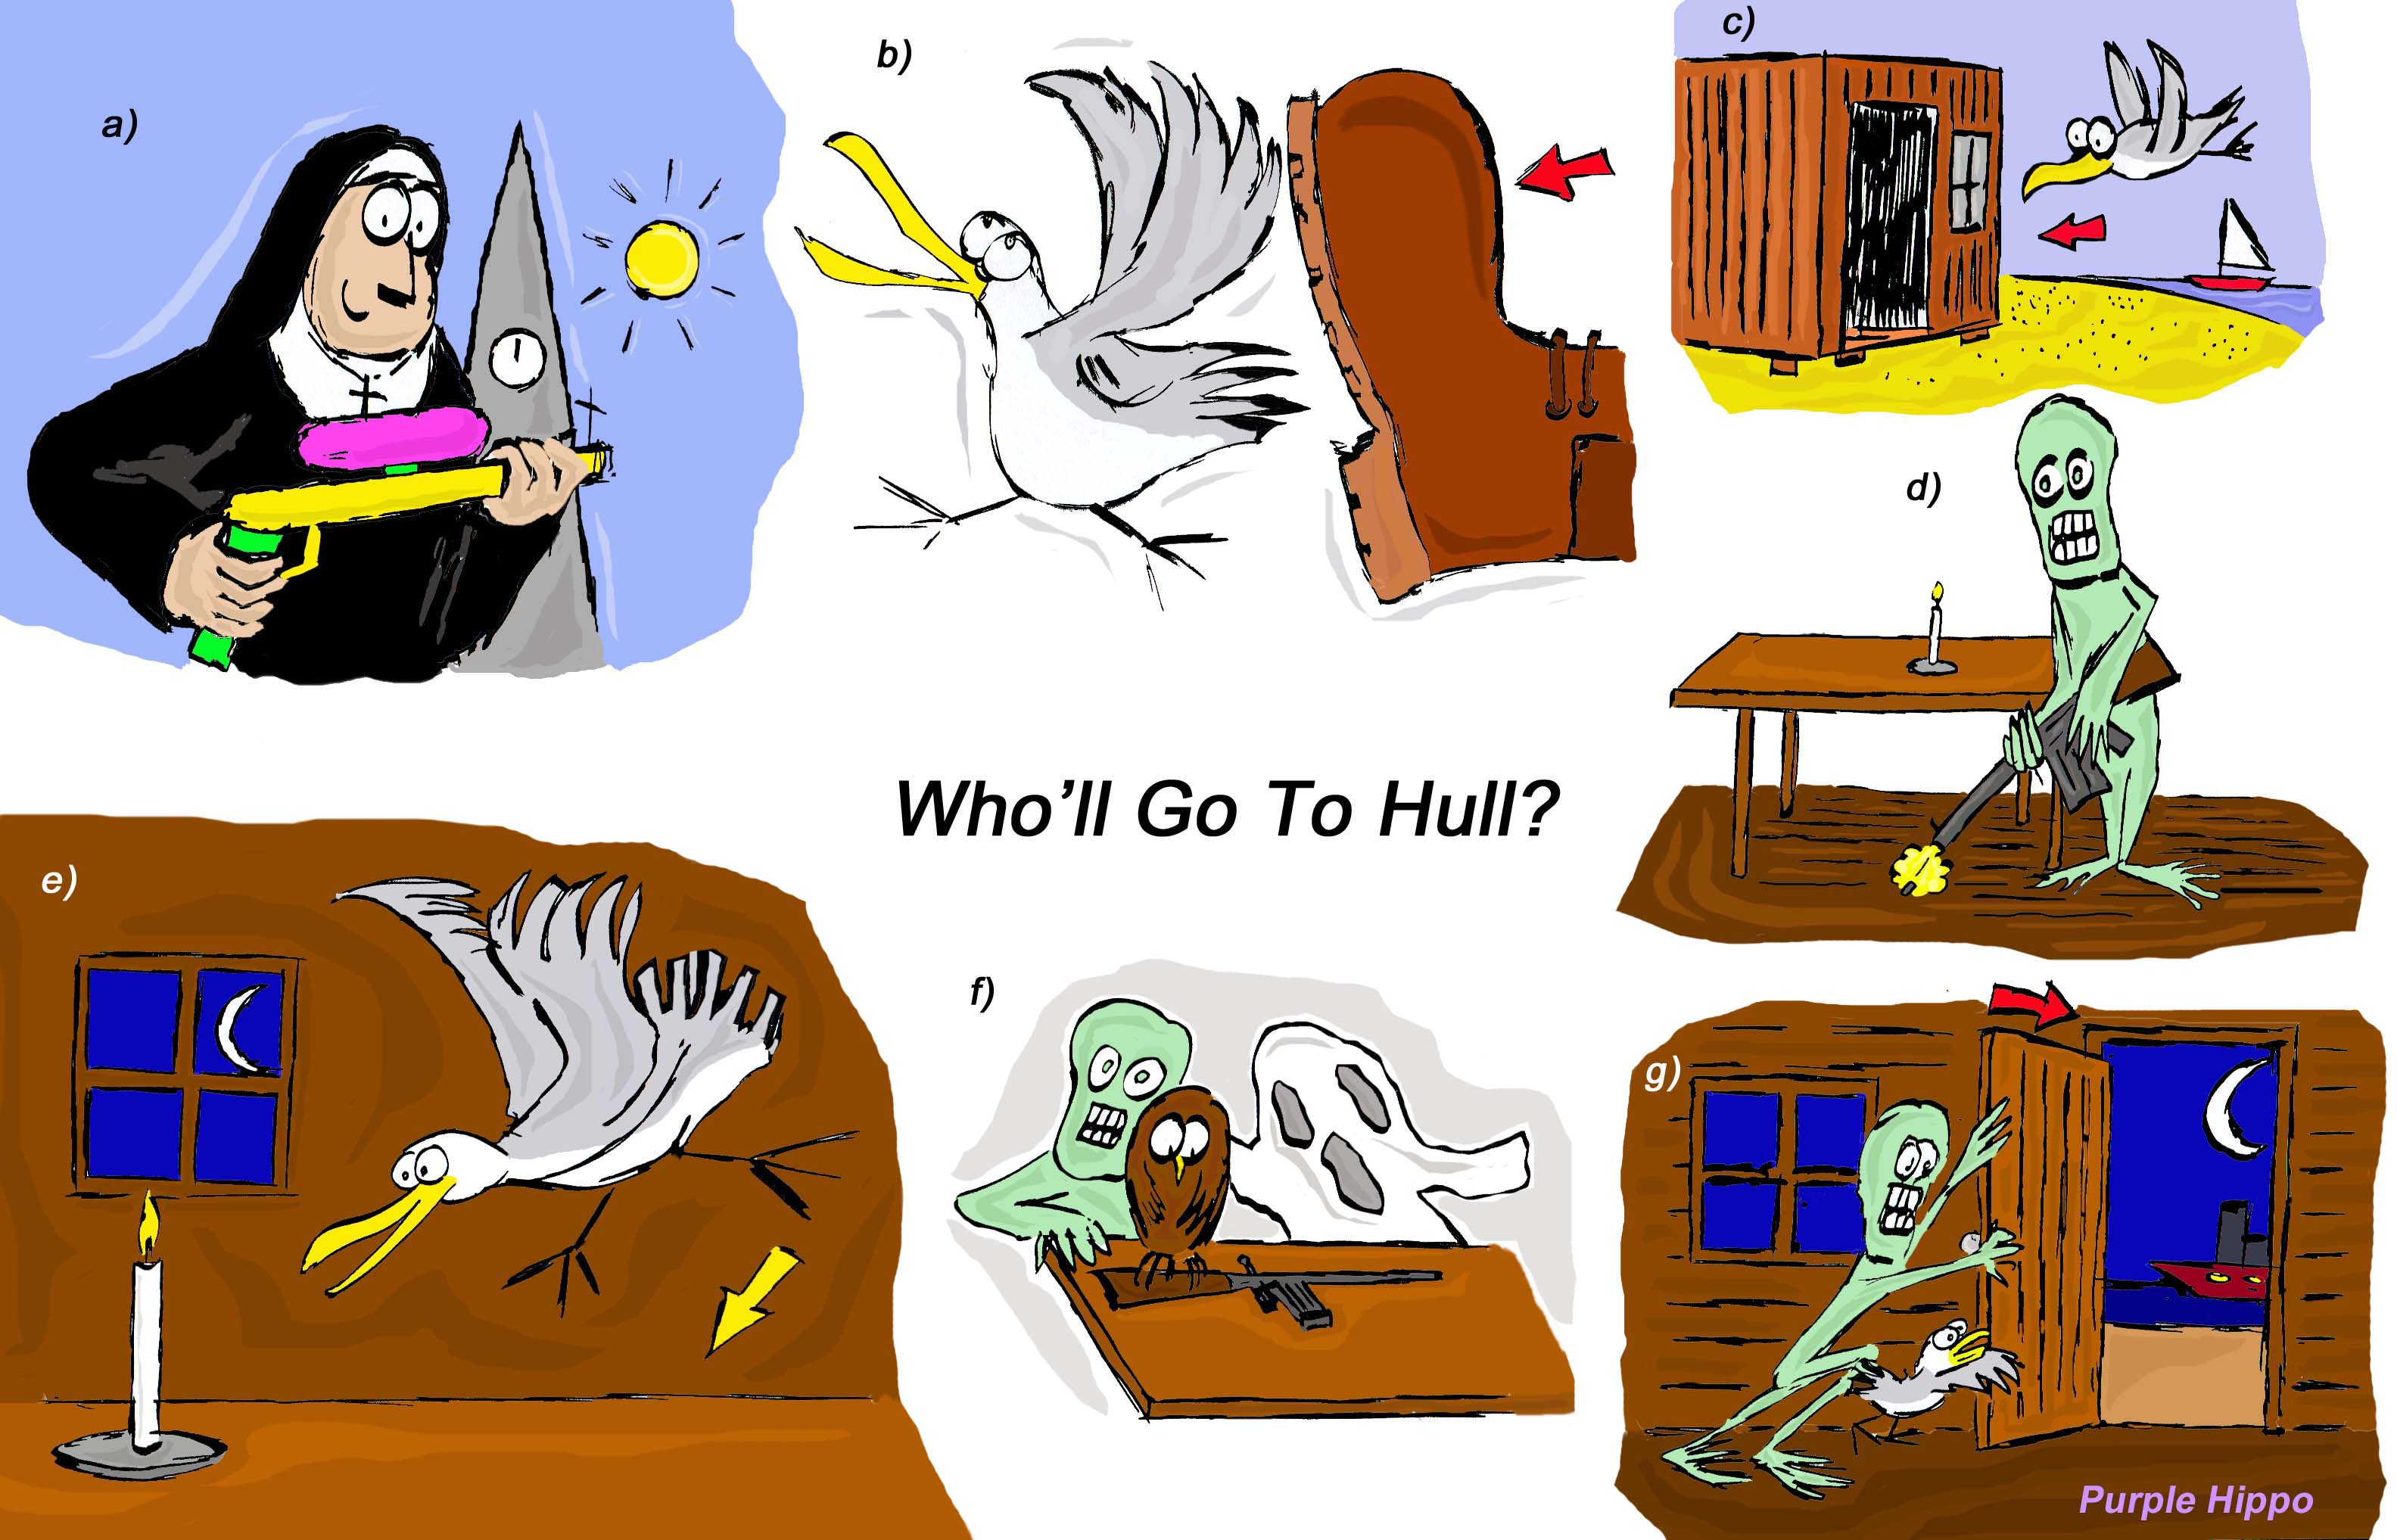 Who'll go to Hull? Activities to practise the pronunciation of words using /ʌ/ (like Hull), /u:/ (like Who'll)